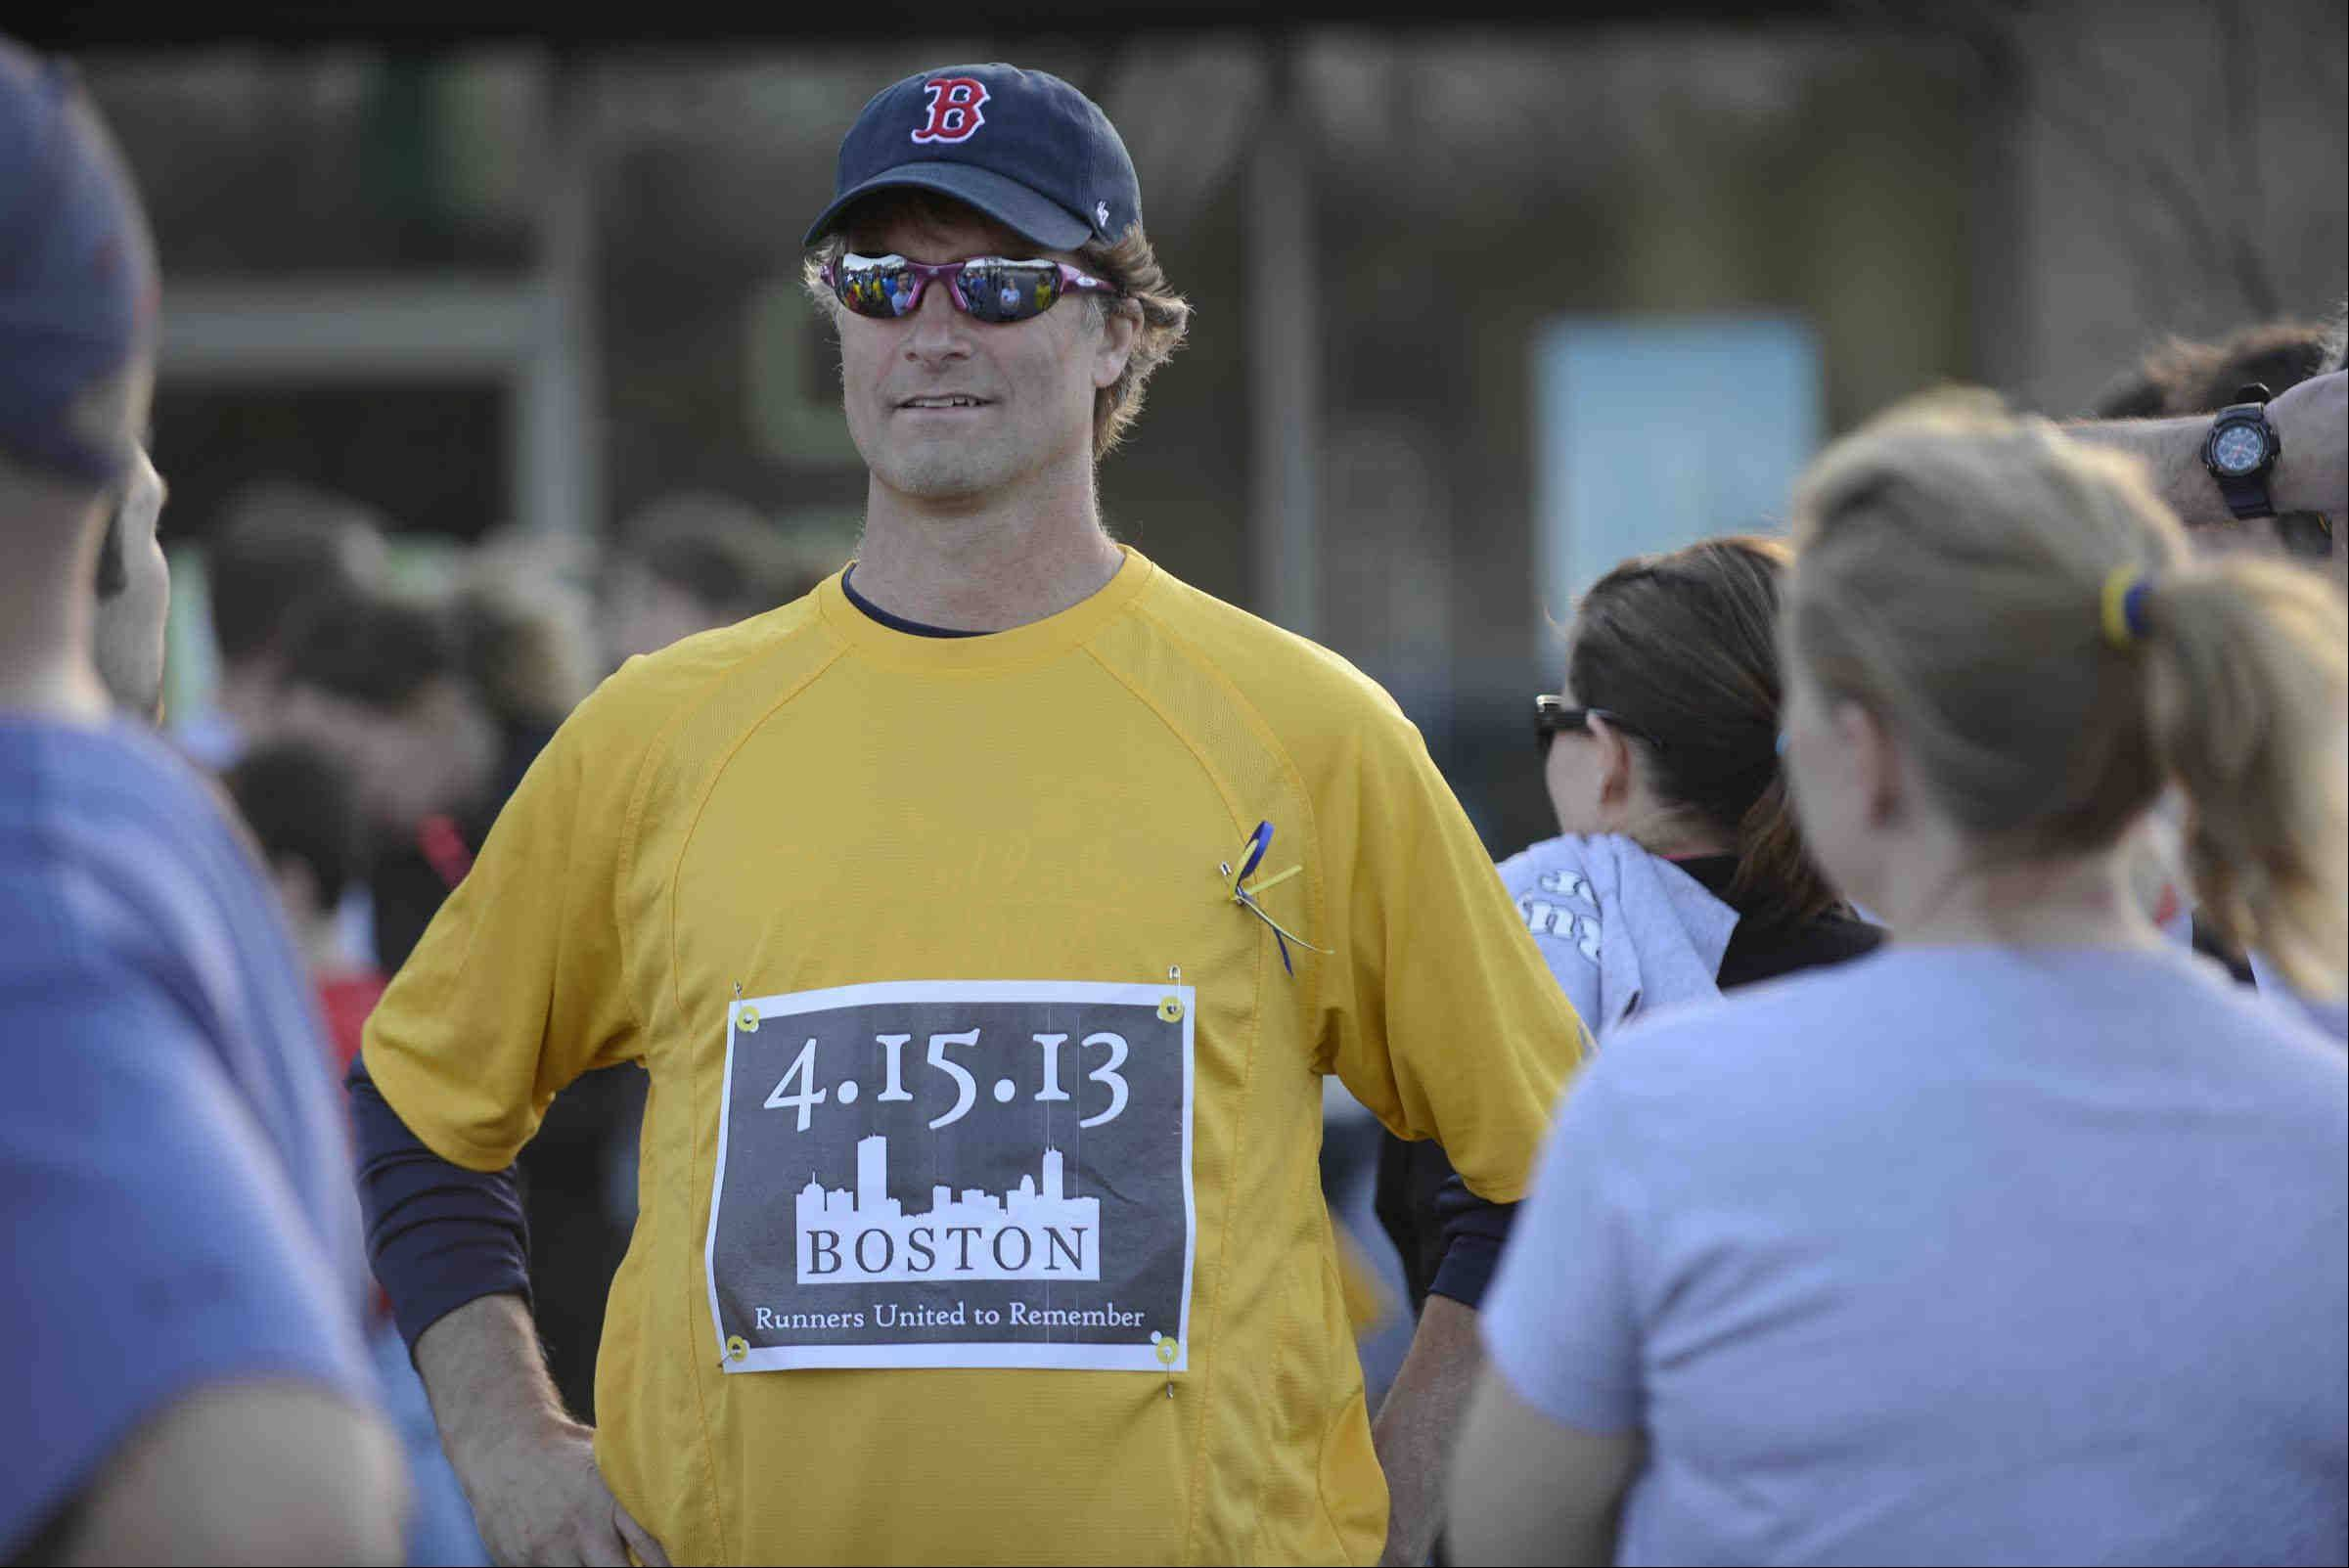 Lance Adams of St. Charles wears a Boston cap and a commemorative race bib as he gathers with other runners Monday evening for a benefit run to honor the Boston community that was the target of terrorists bombs. Dick Pond Athletics in St. Charles was one of hundreds of running stores across the country to hold the Runners For Boston event.